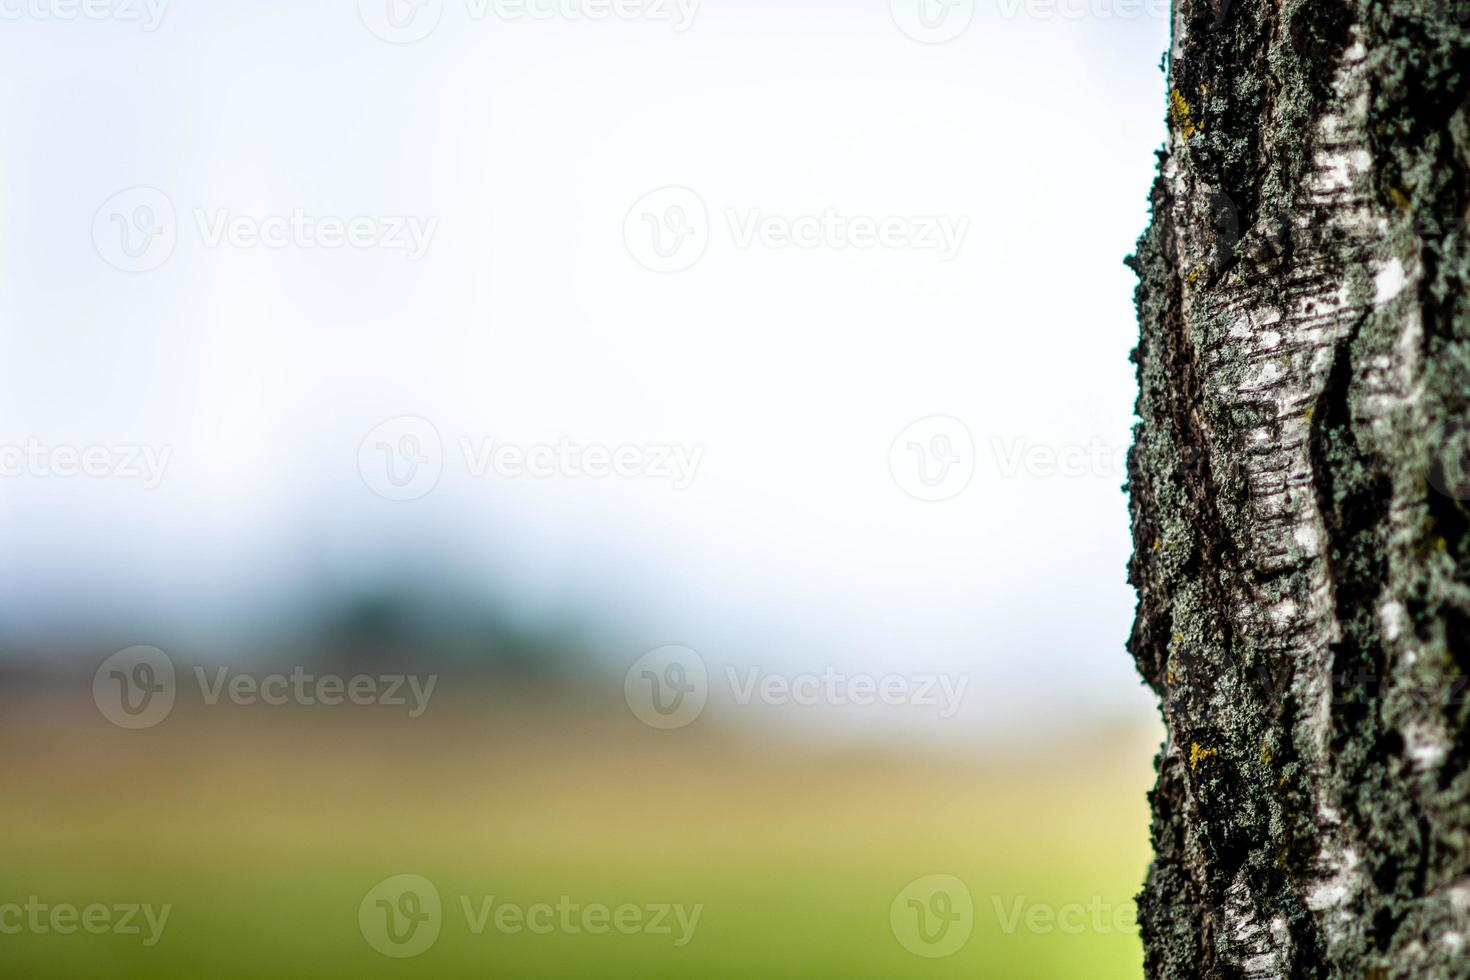 Abstracted background with a close-up of a lone birch tree trunk. photo